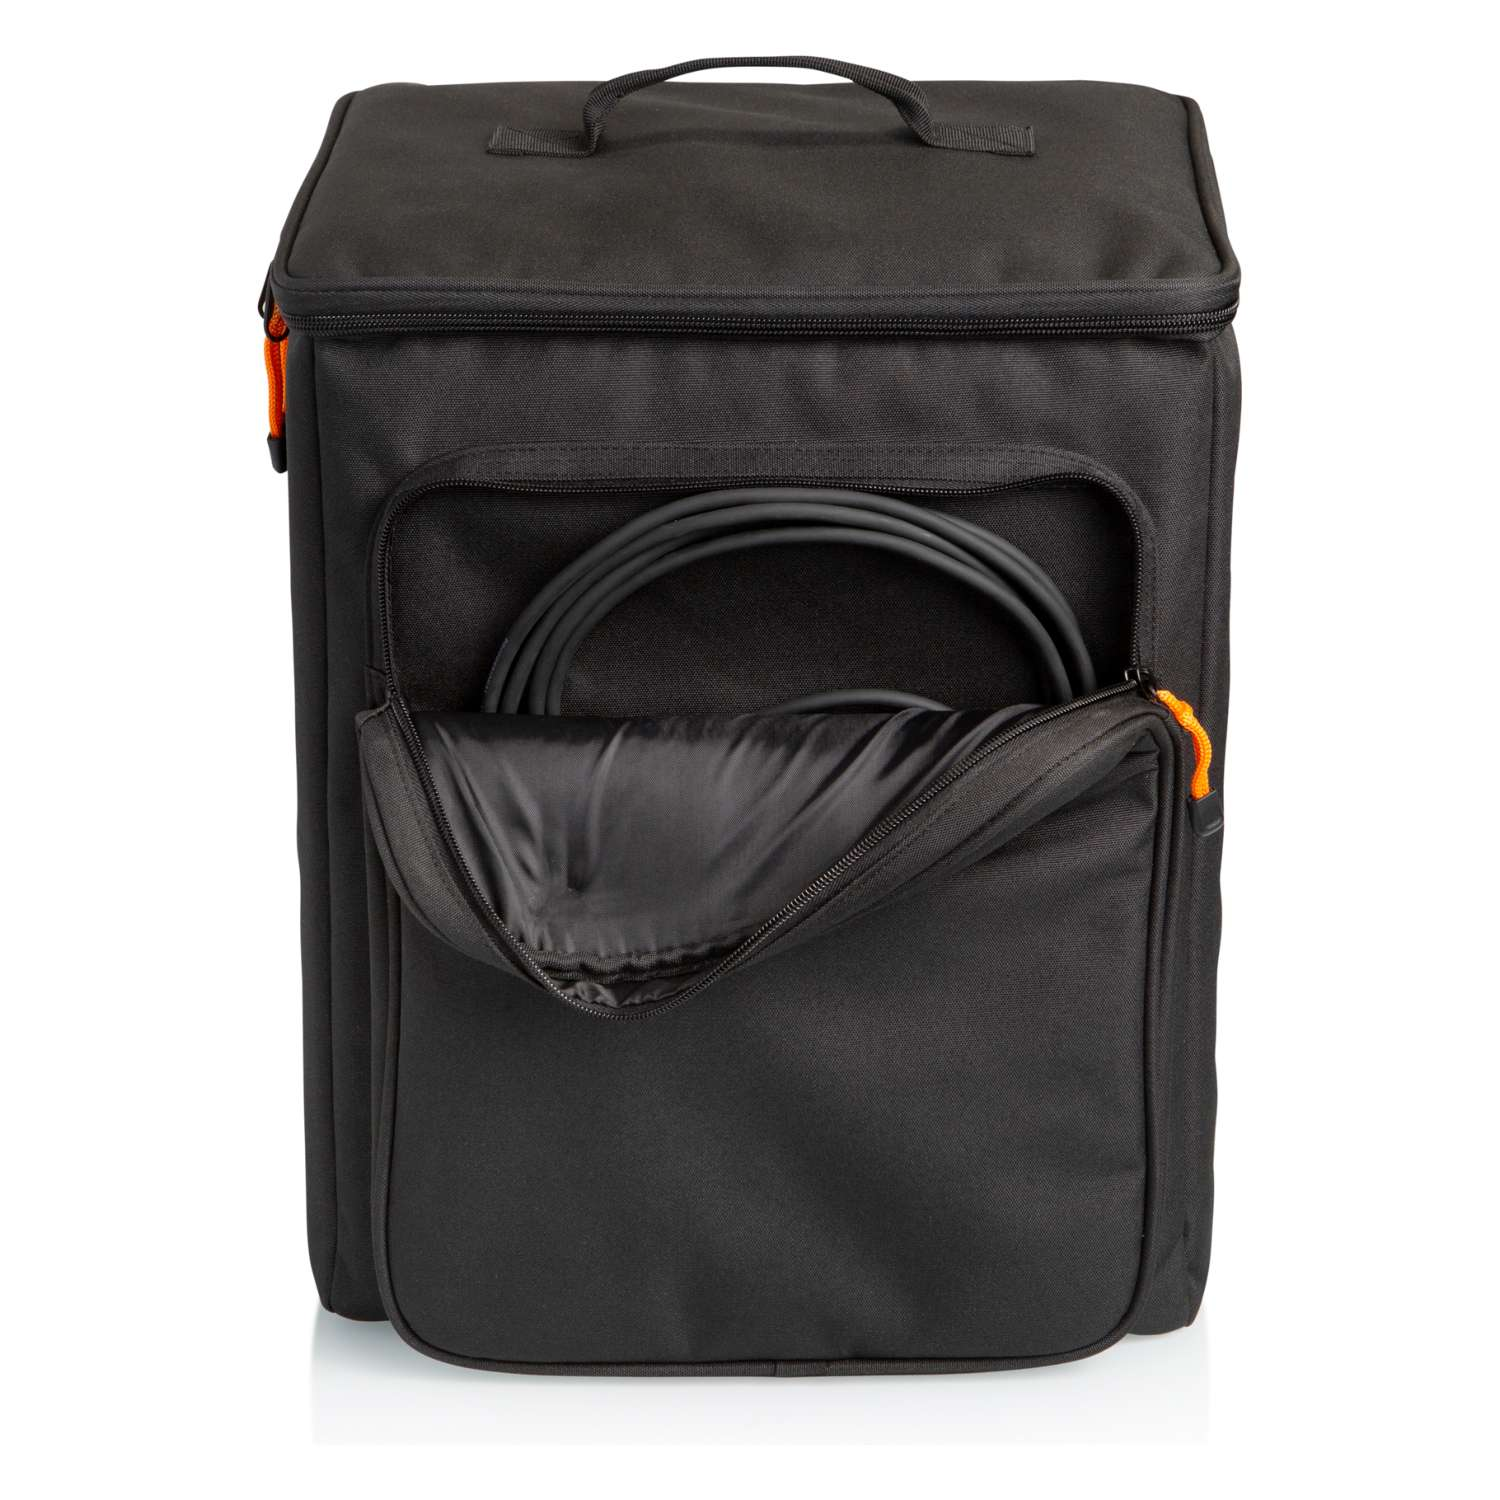 JBL EON One Compact with Backpack 11